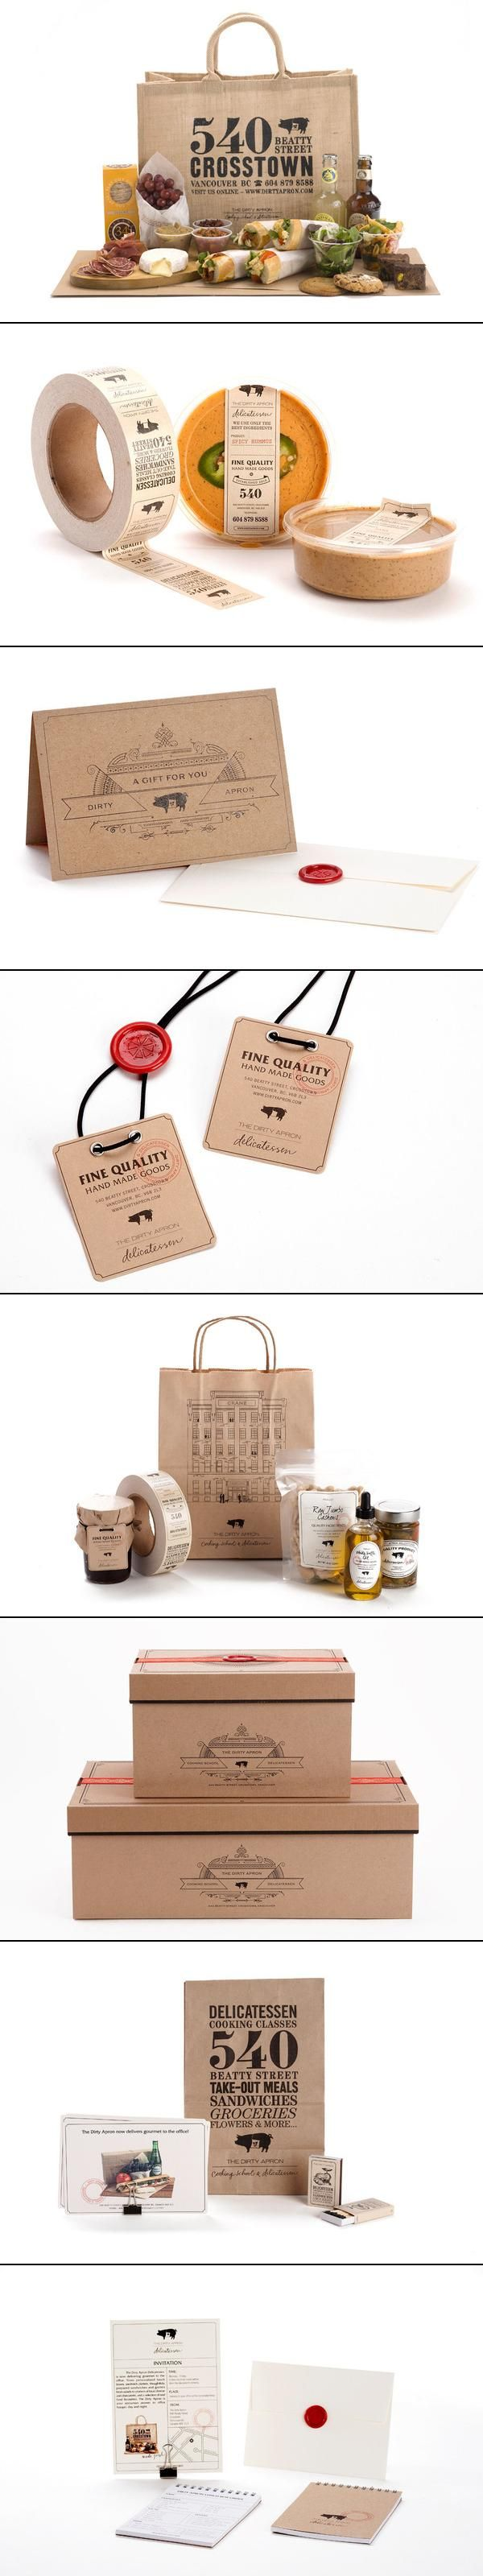 The Dirty Apron Deli #identity #packaging #branding #marketing PD